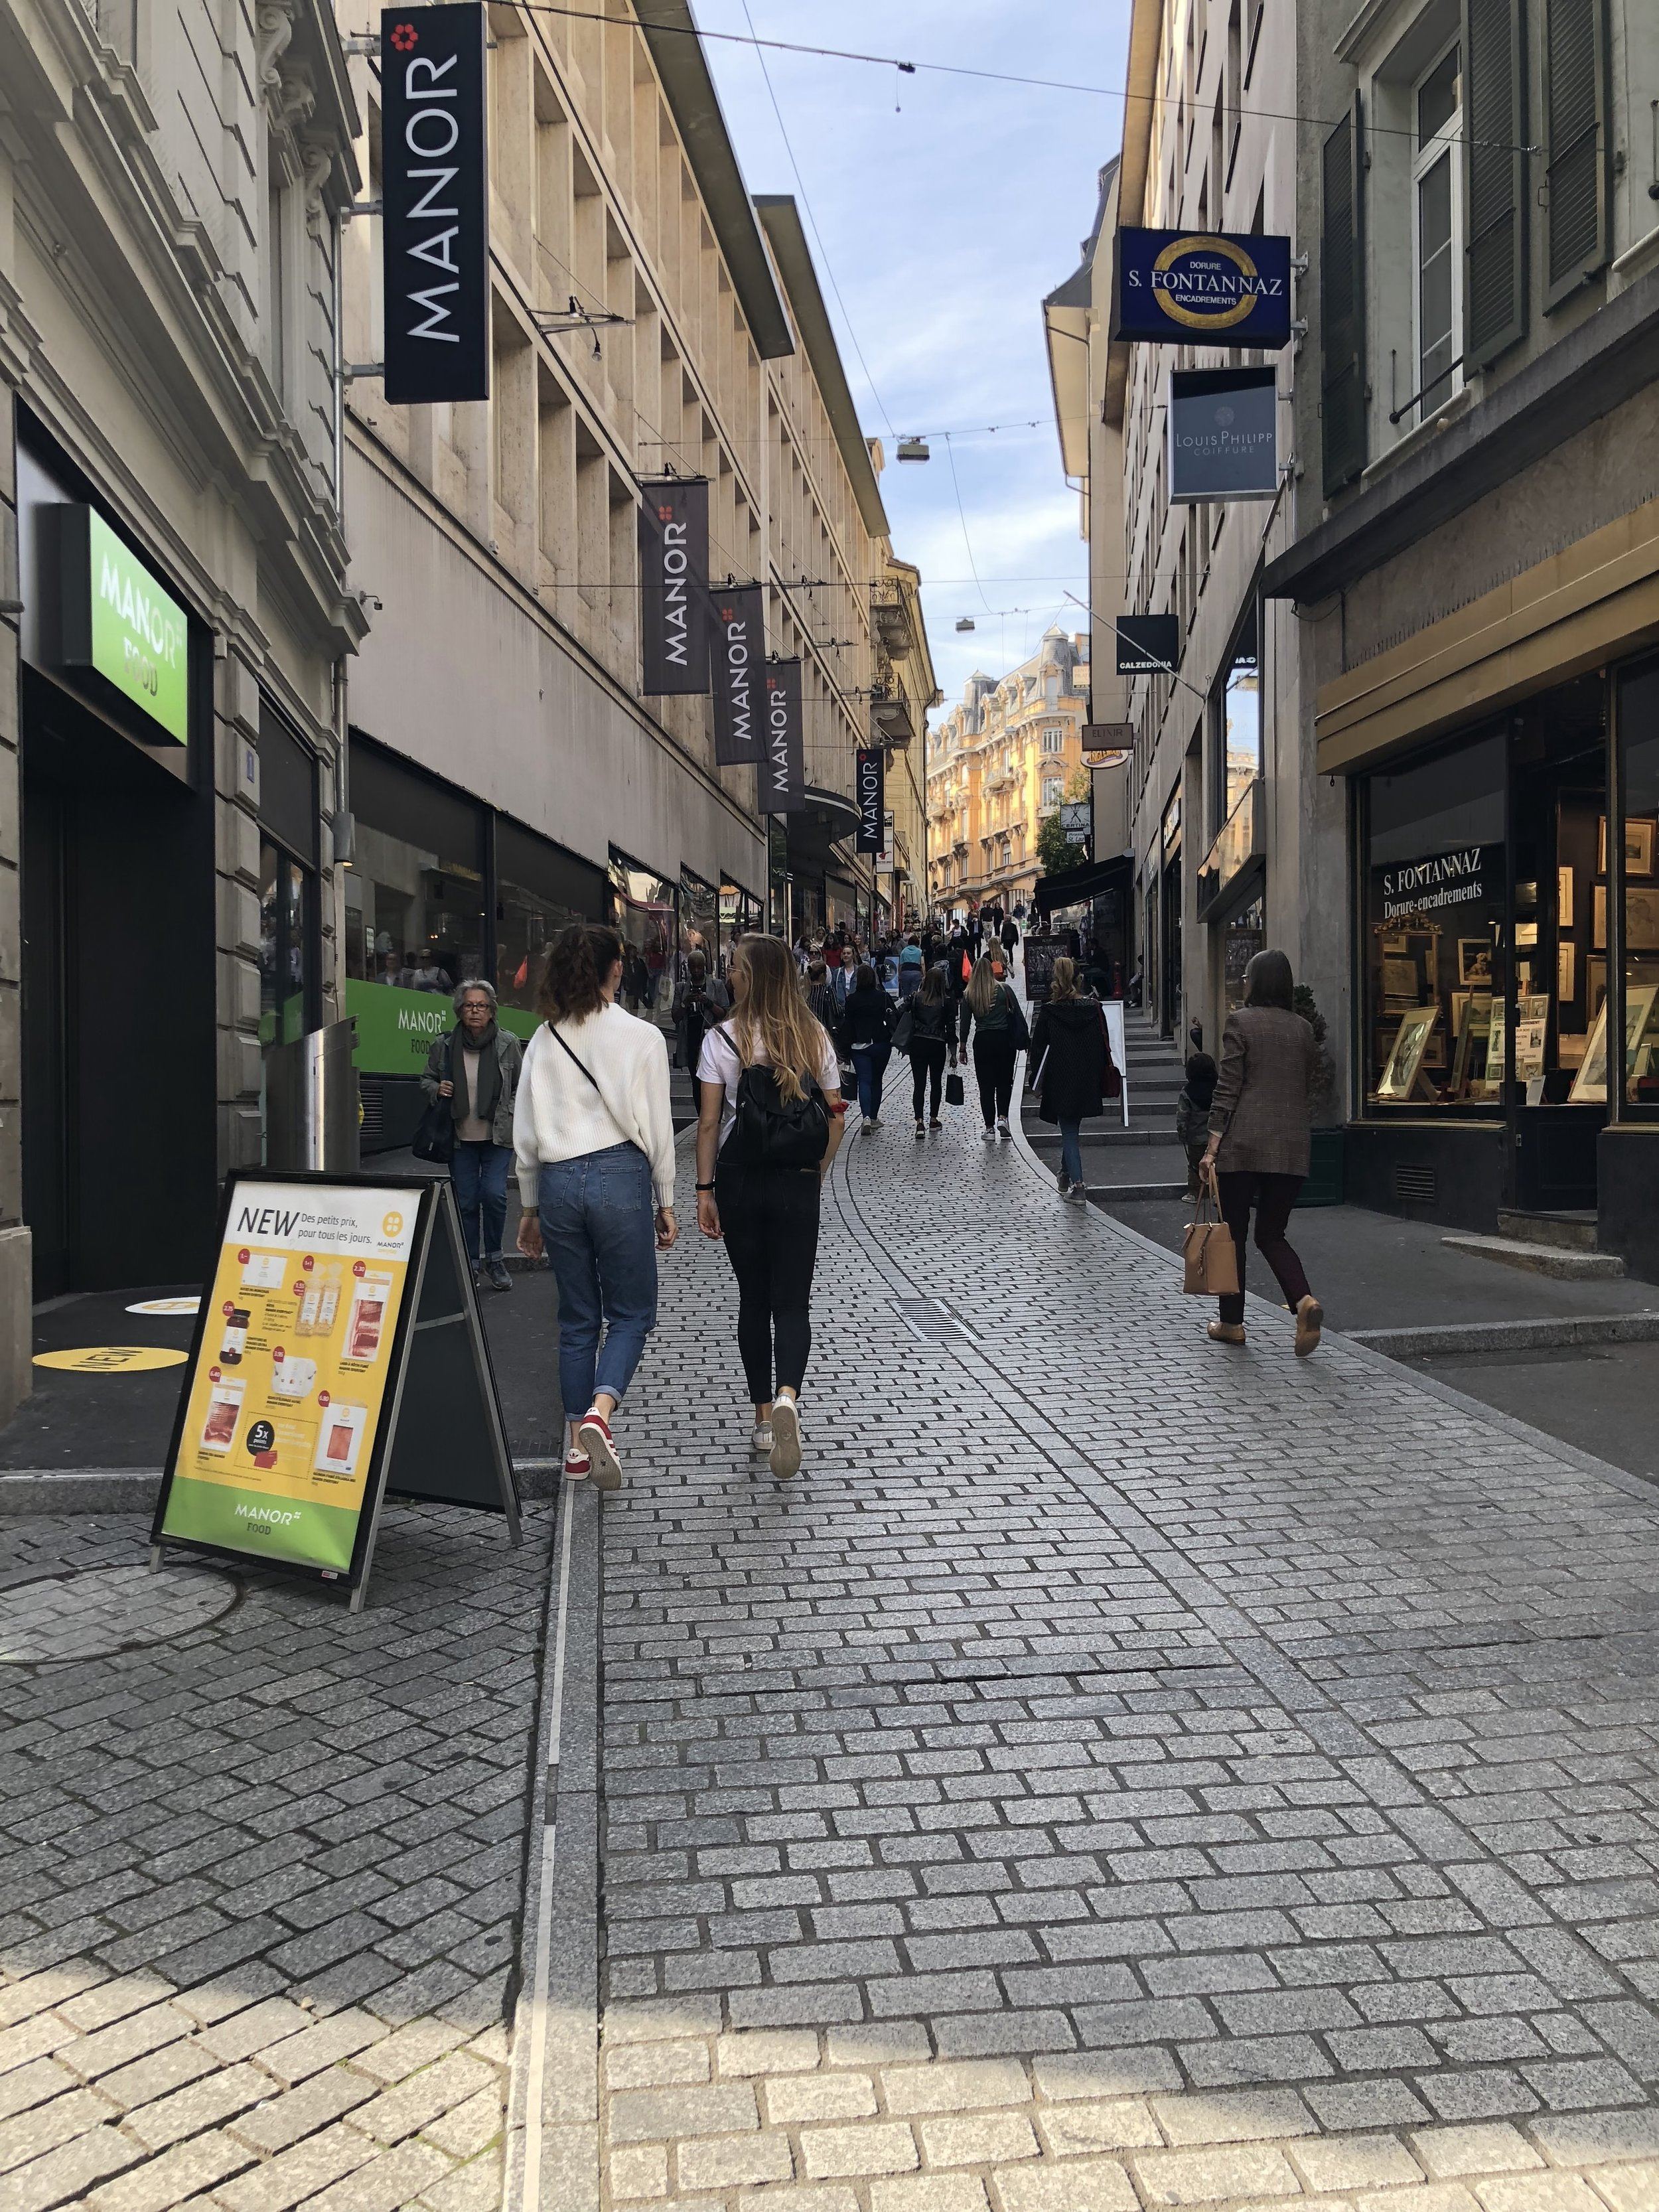 A pedestrian zone in Lausanne, showing the average slope one has to face when biking or walking around the city. Stairs on both sides facilitate travel up and down.